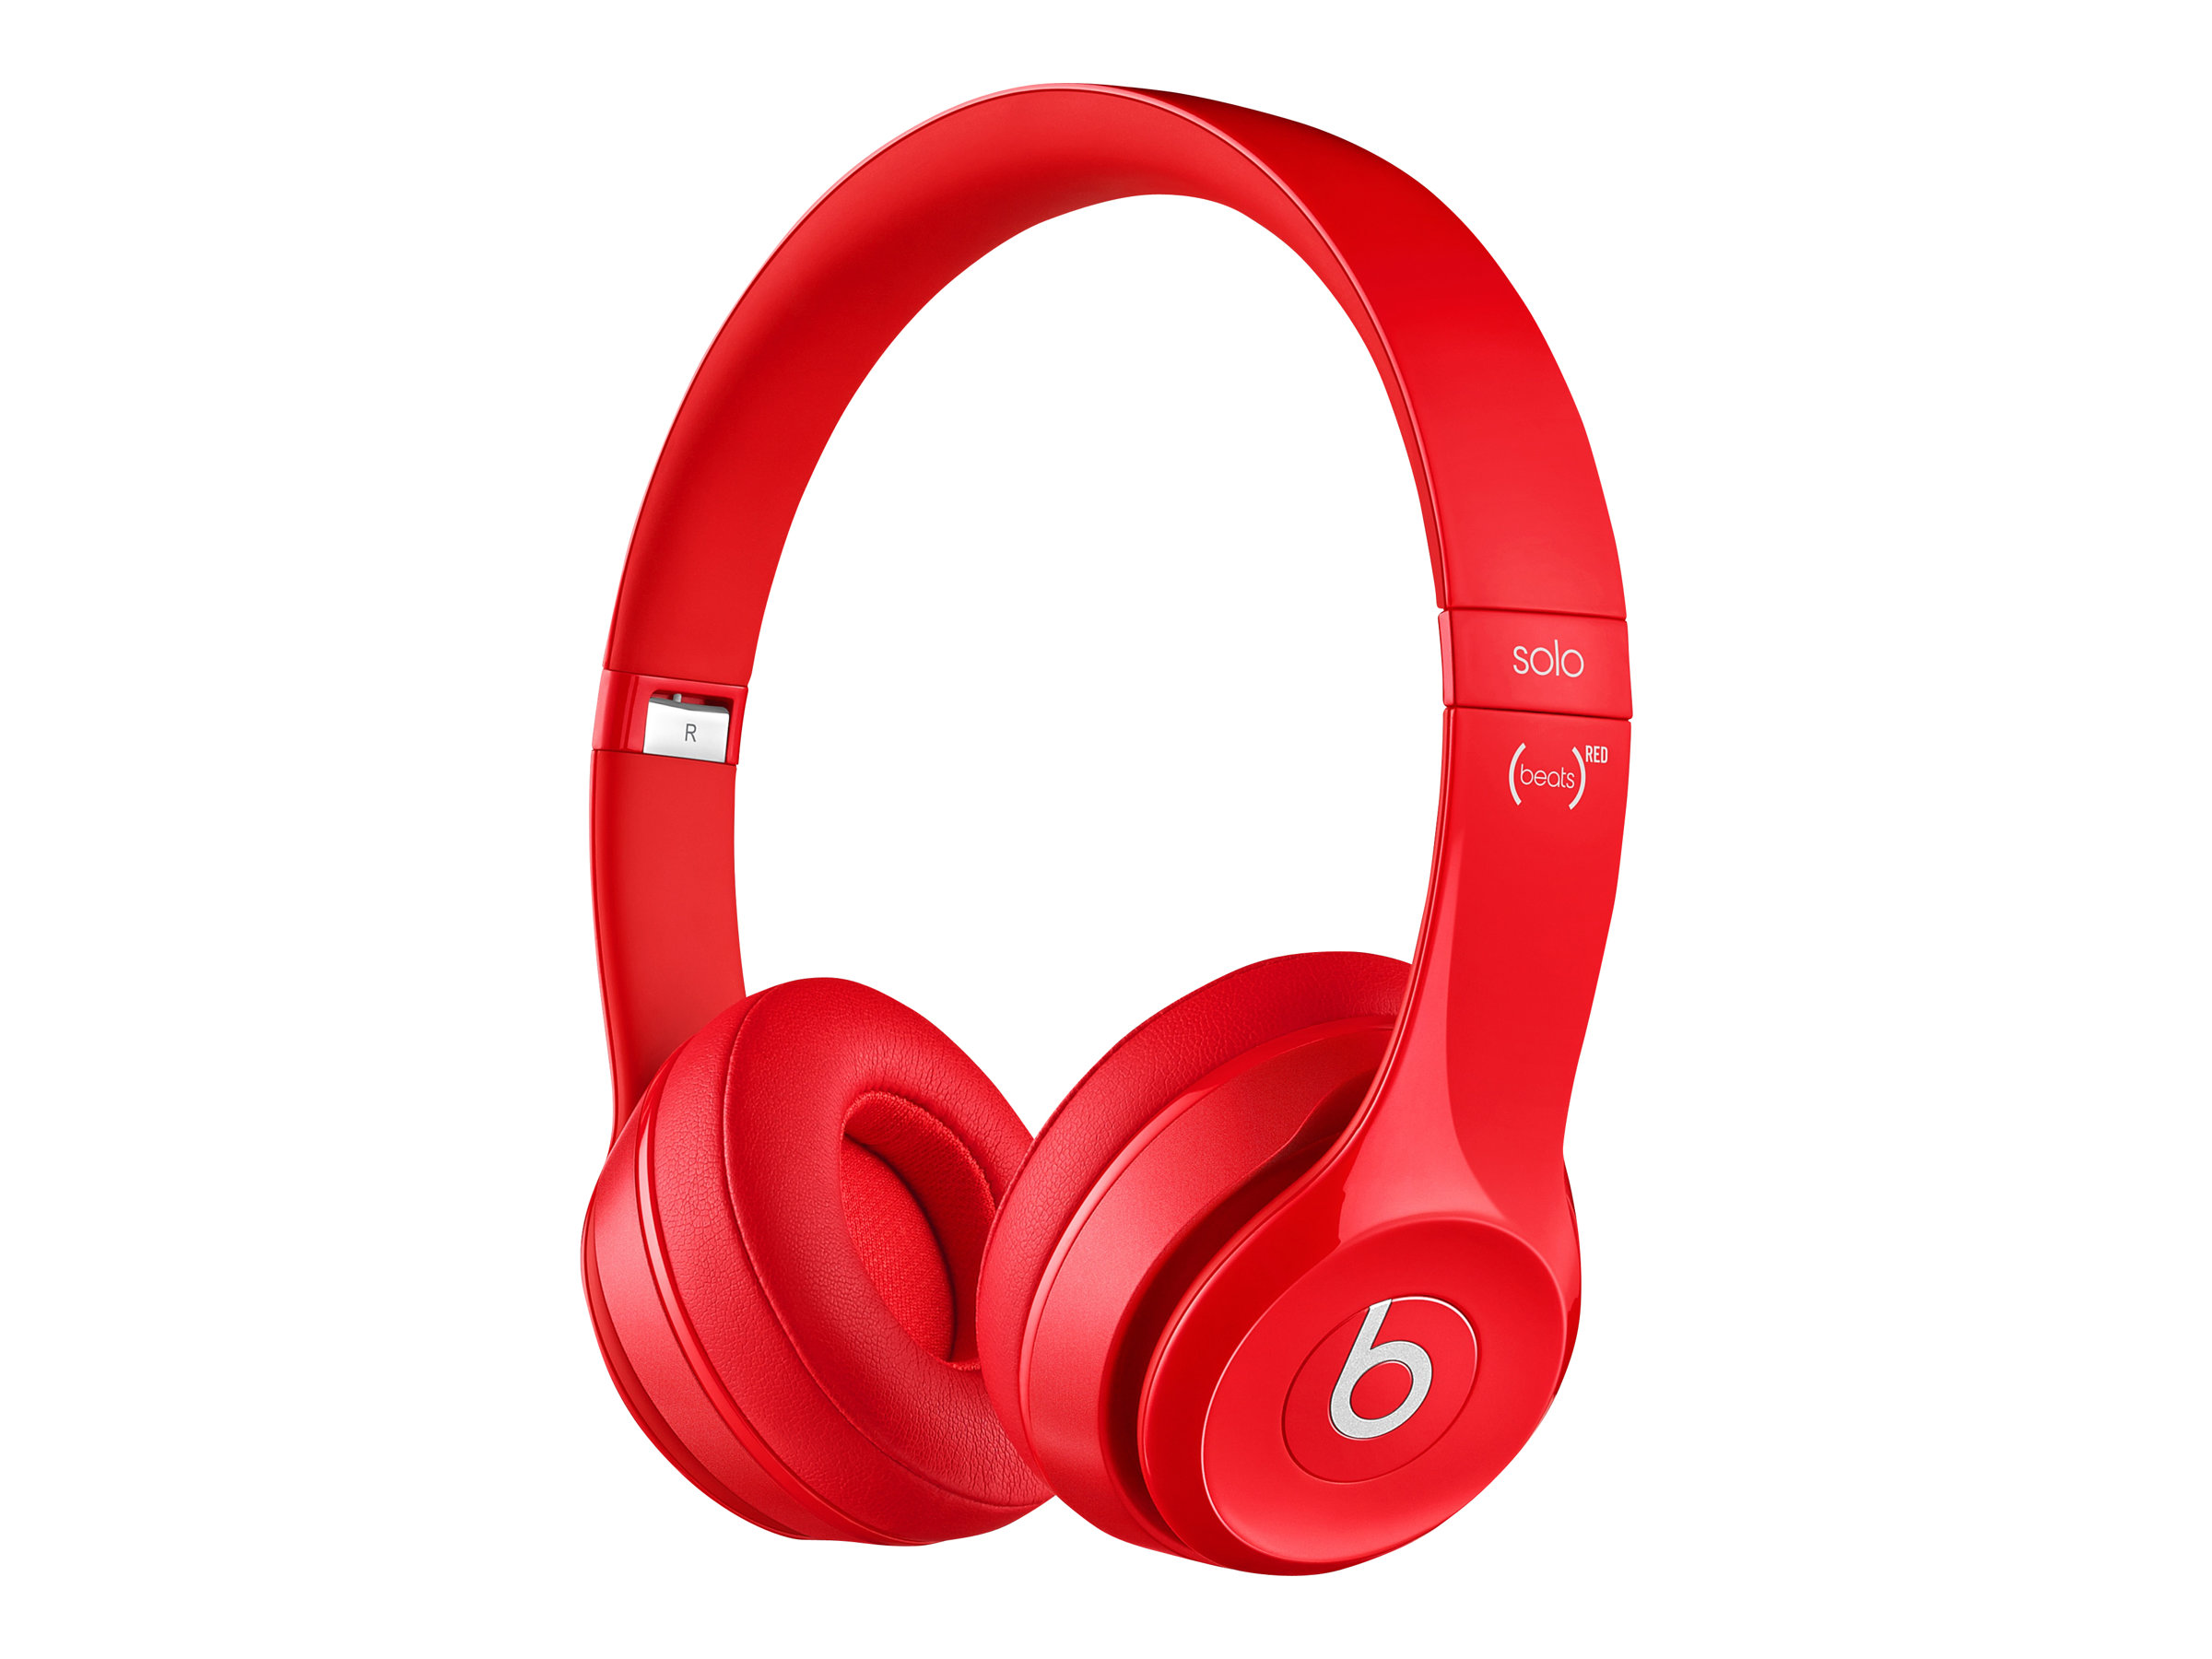 Beats by Dr. Dre Solo2 Corded Over-Ear Headphones, Red by Beats by Dr. Dre